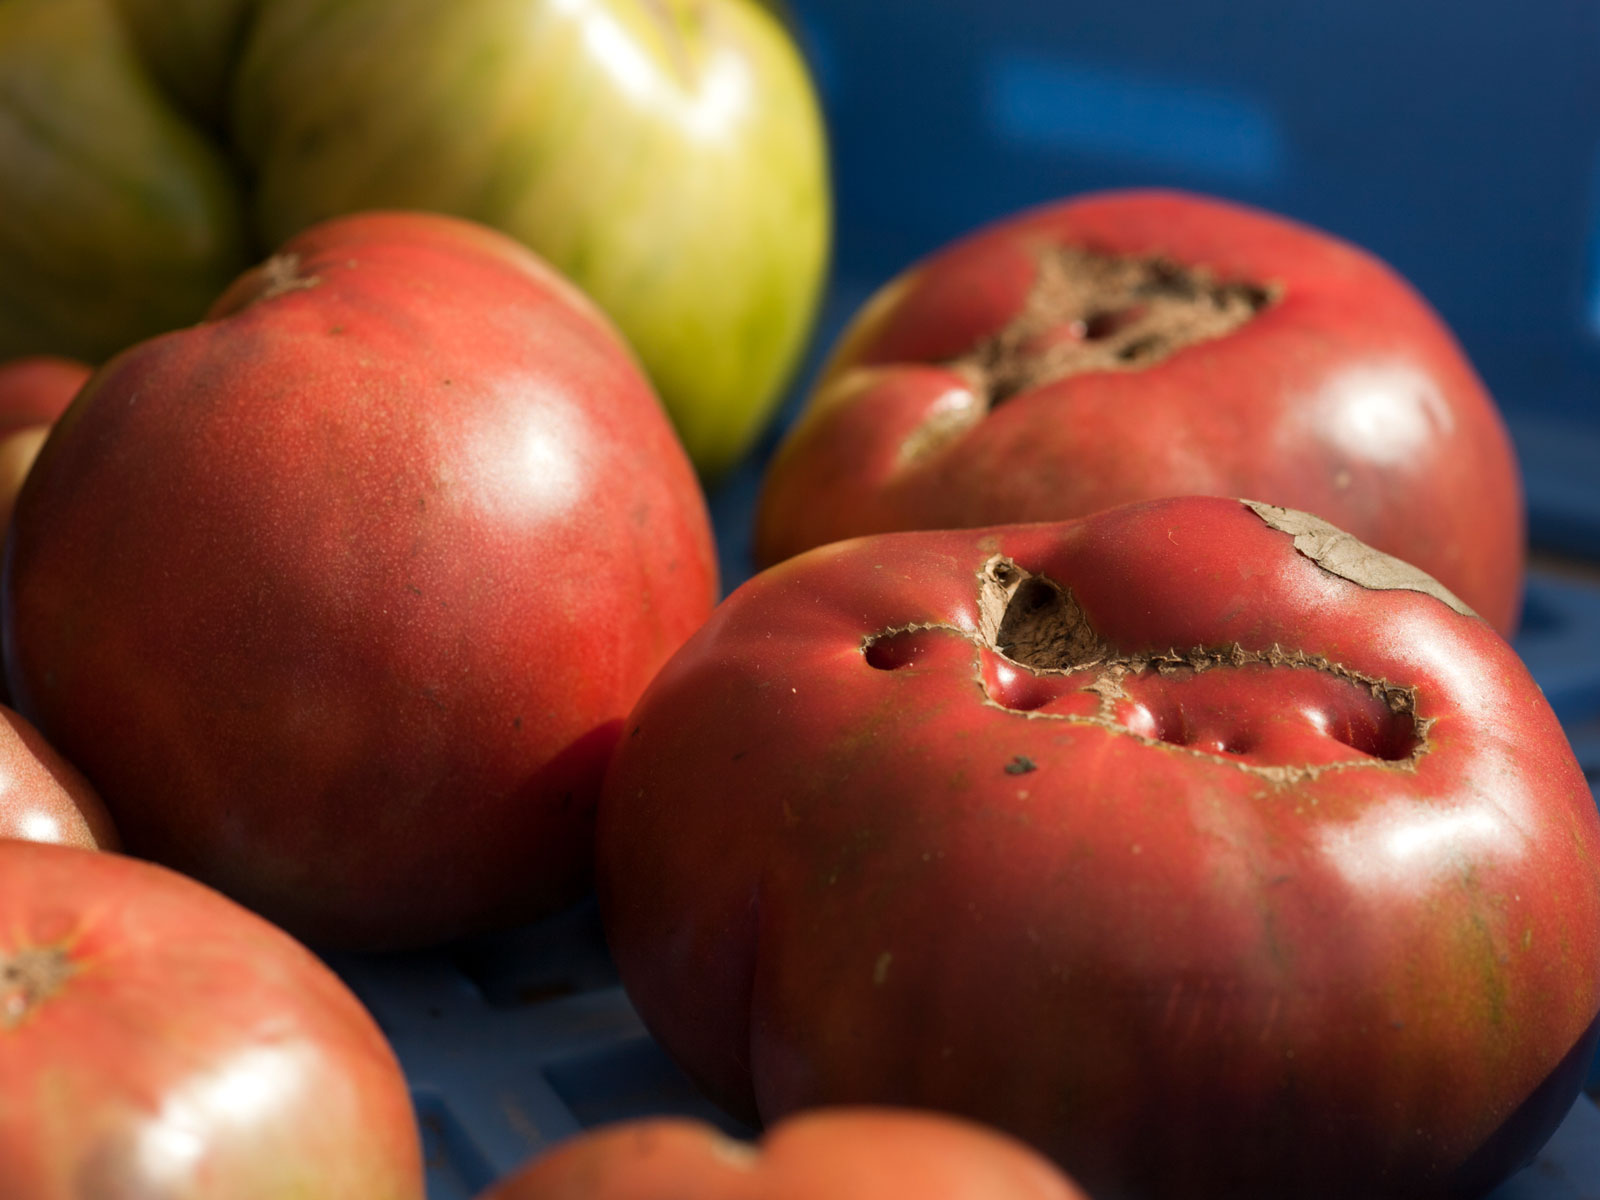 Kroger Launches Ugly Produce Program